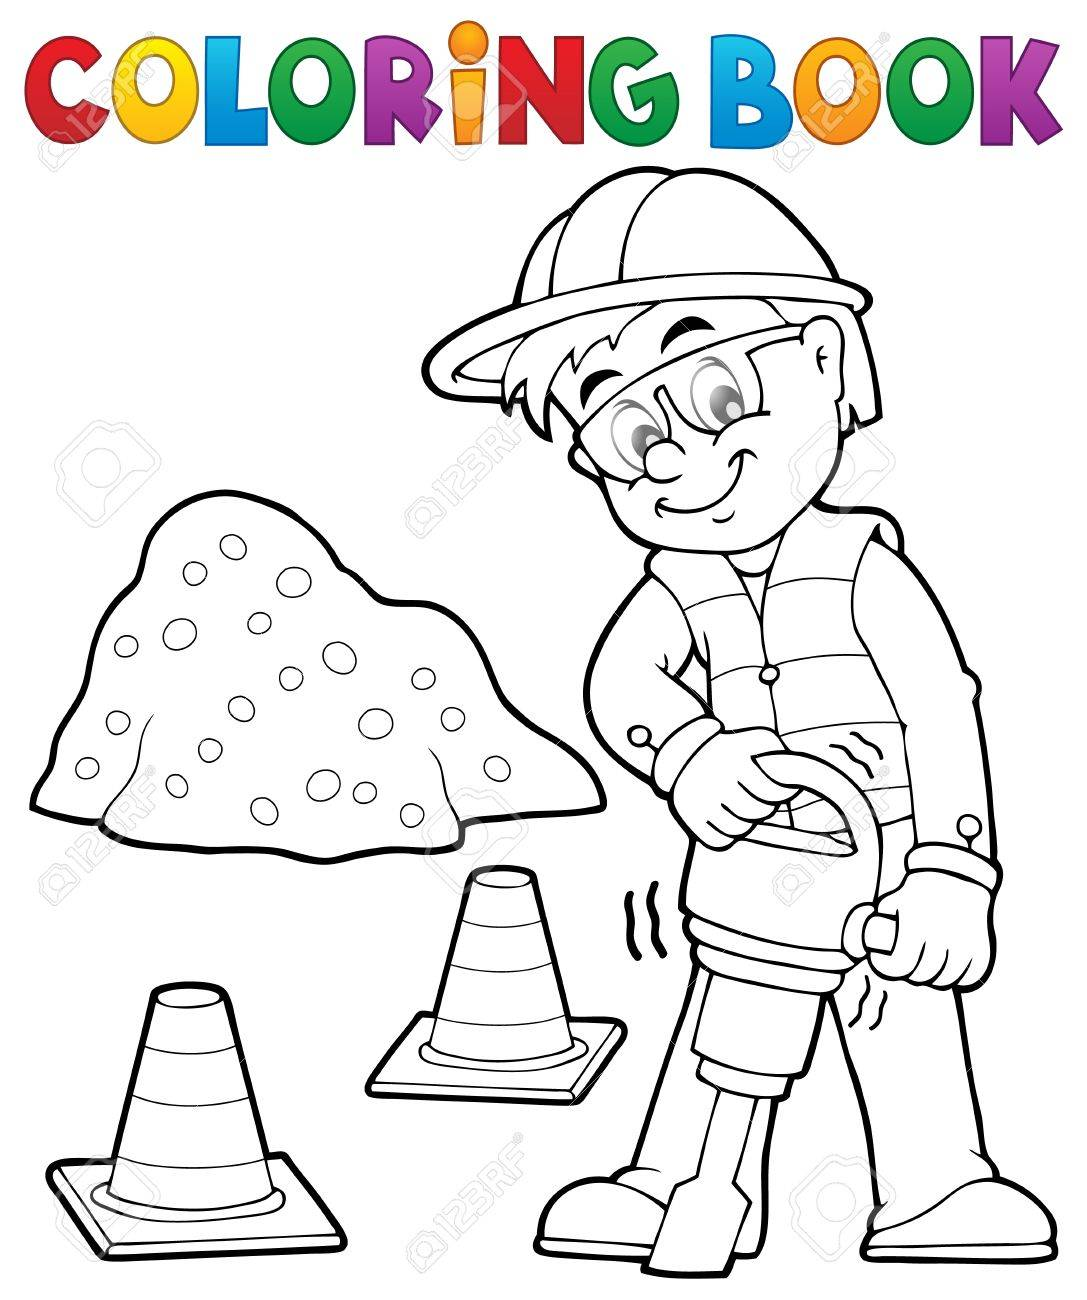 Coloring Book Construction Worker 3 - Vector Illustration. Royalty ...